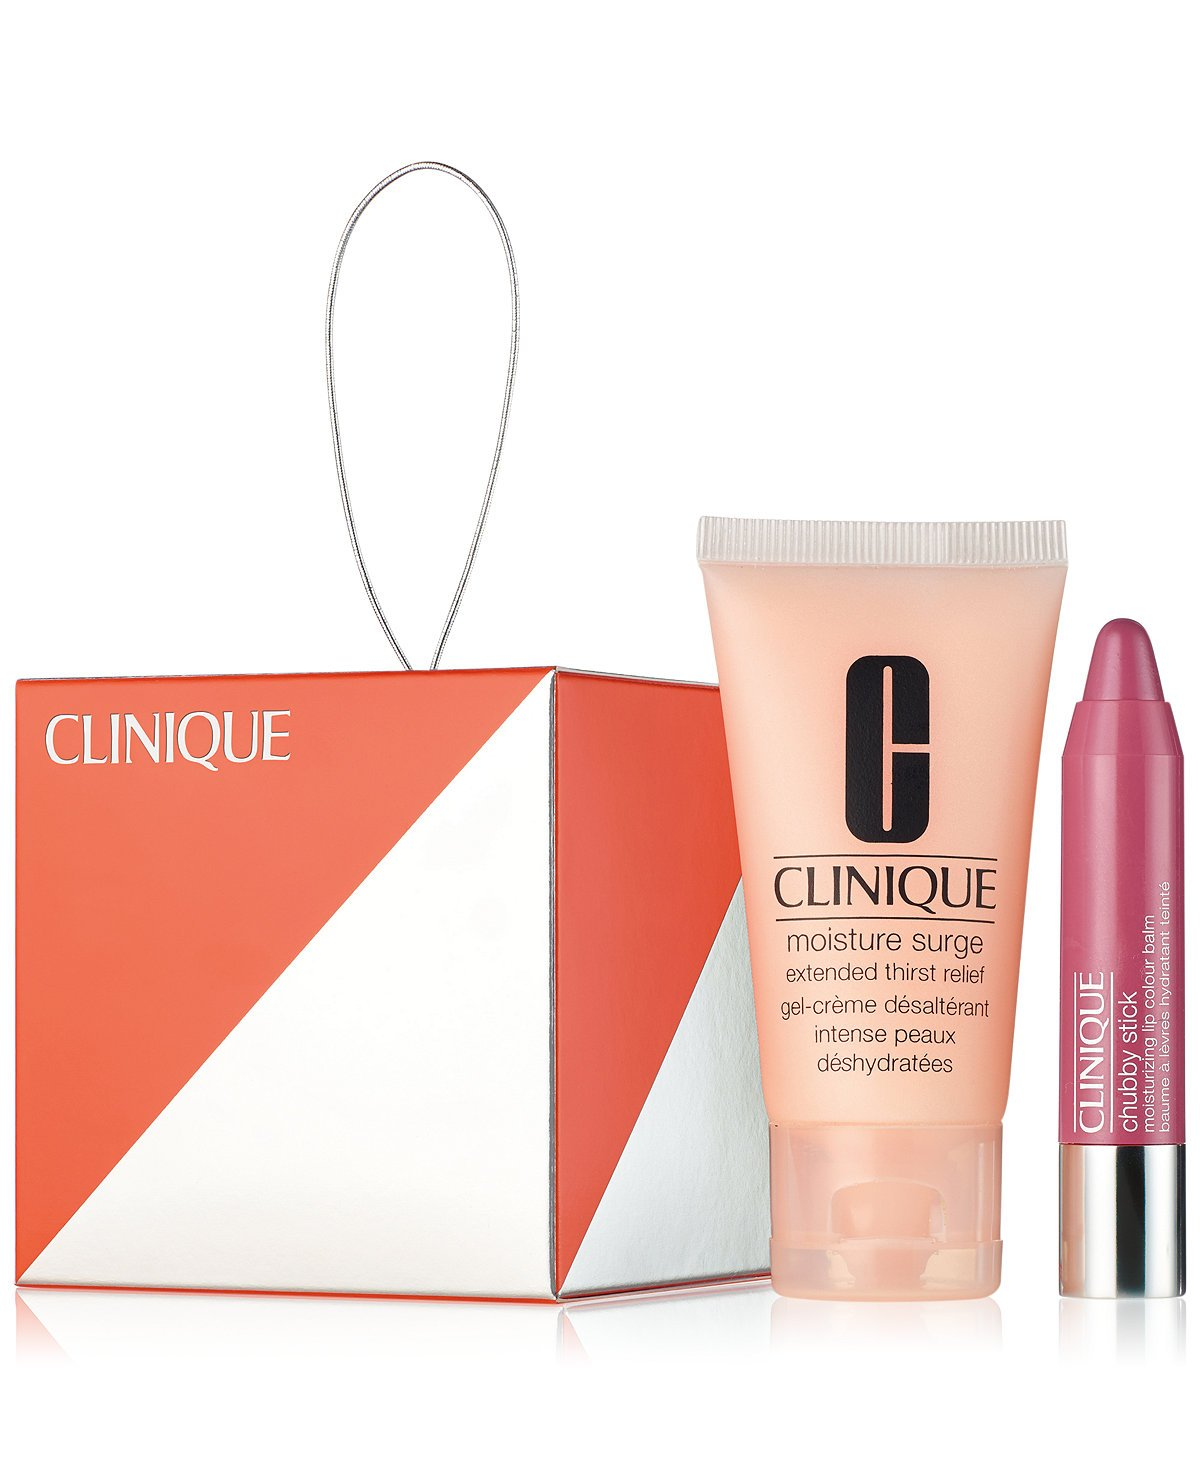 Clinique Giftset Moisture Surge Extended Thirst Relief 1oz & Chubby Stick Moisturizing Lip Colour Balm in Super Strawberry